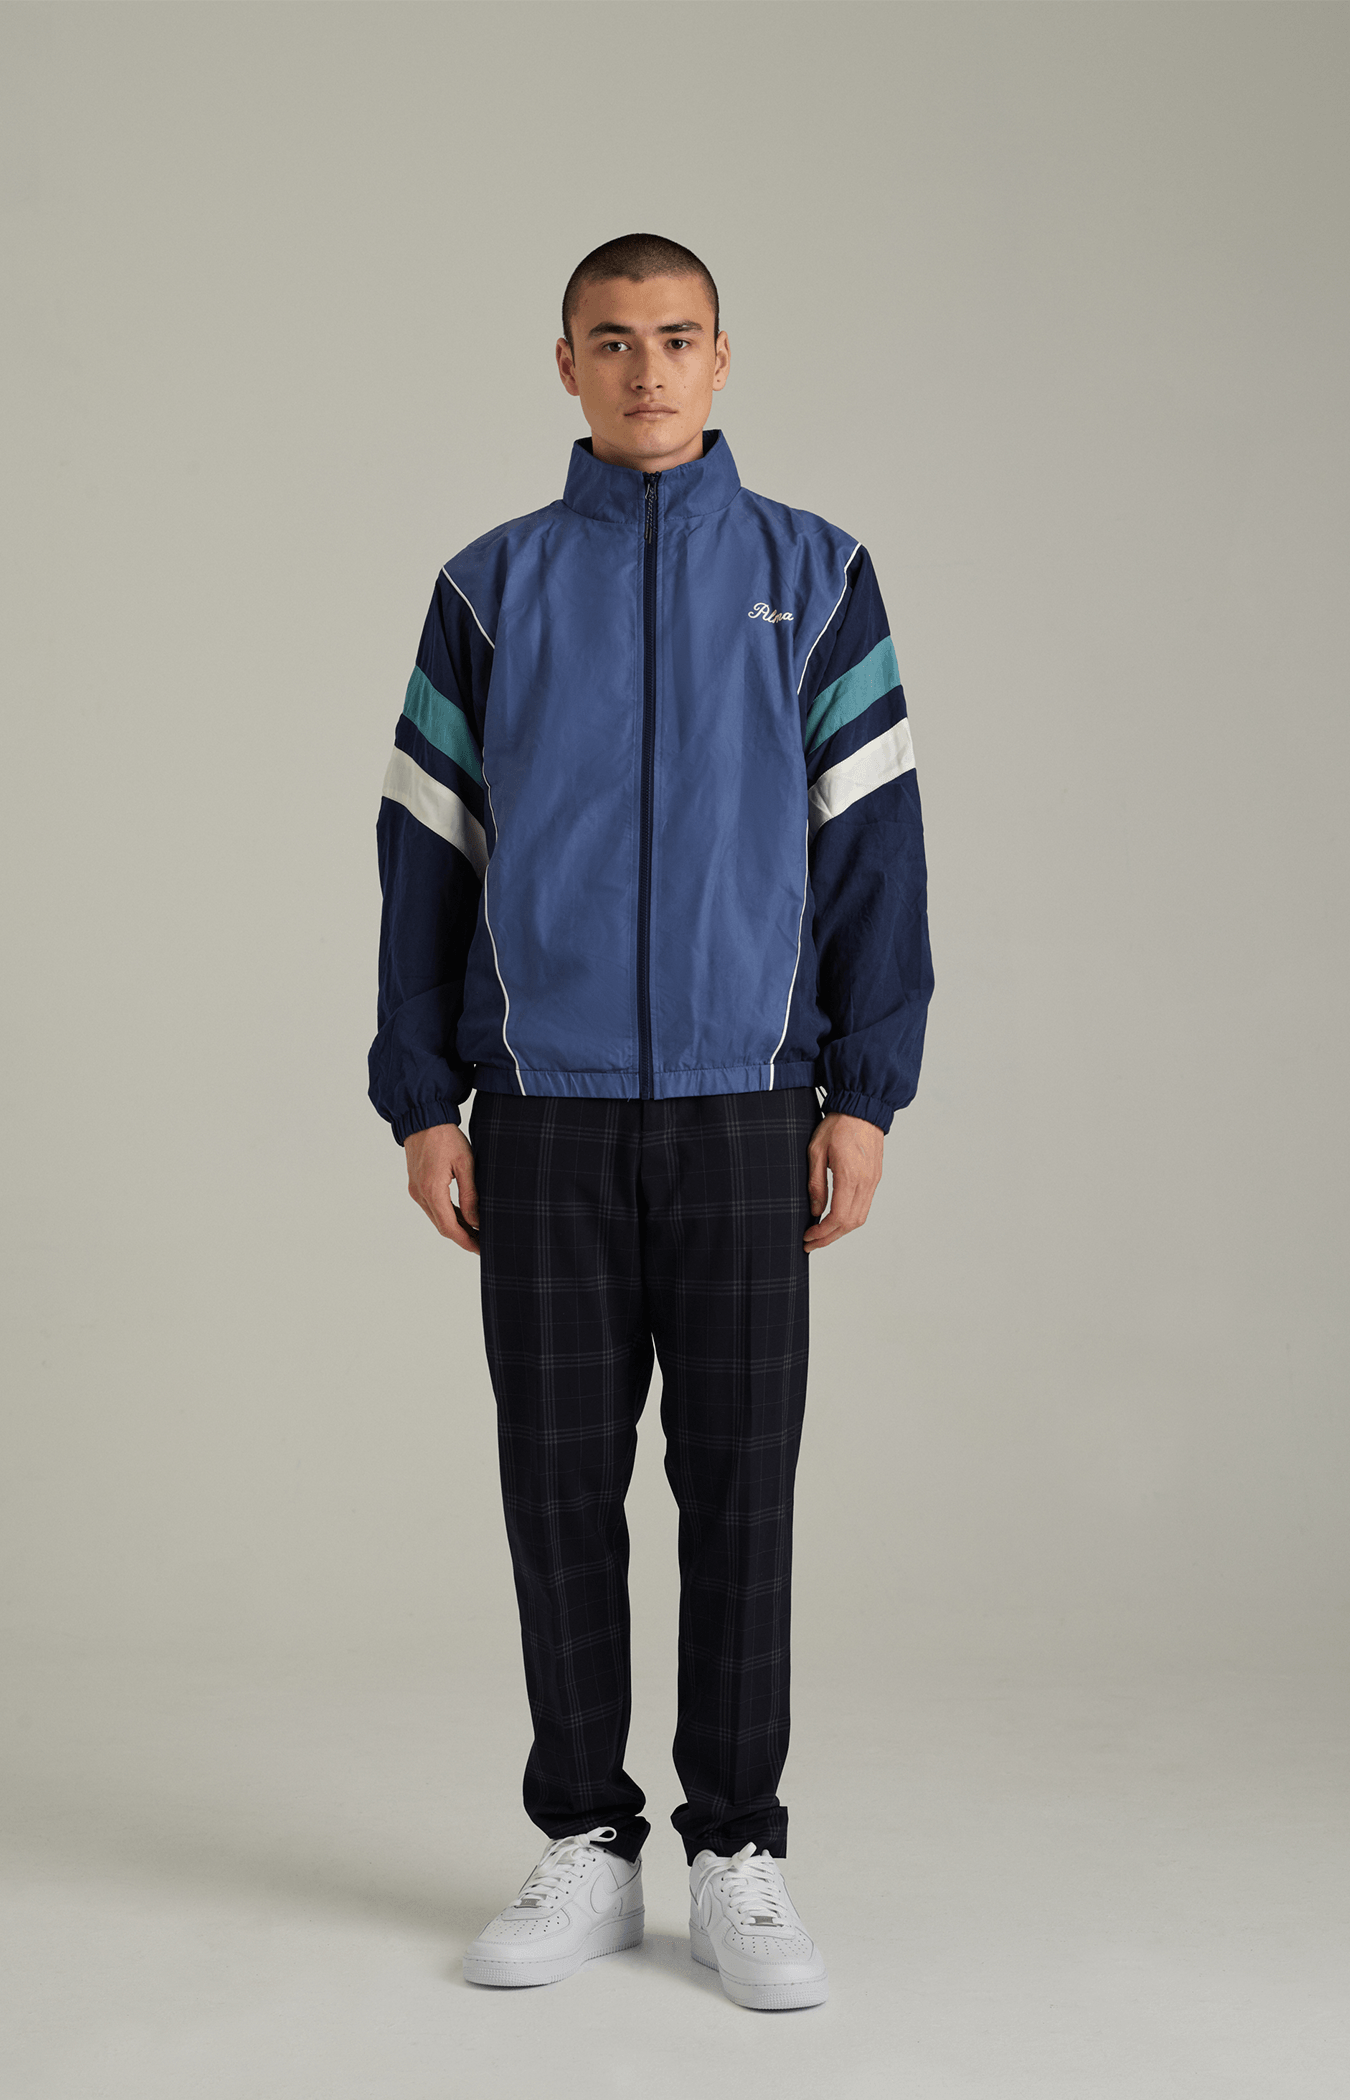 Lotus Blue Penta Track Jacket